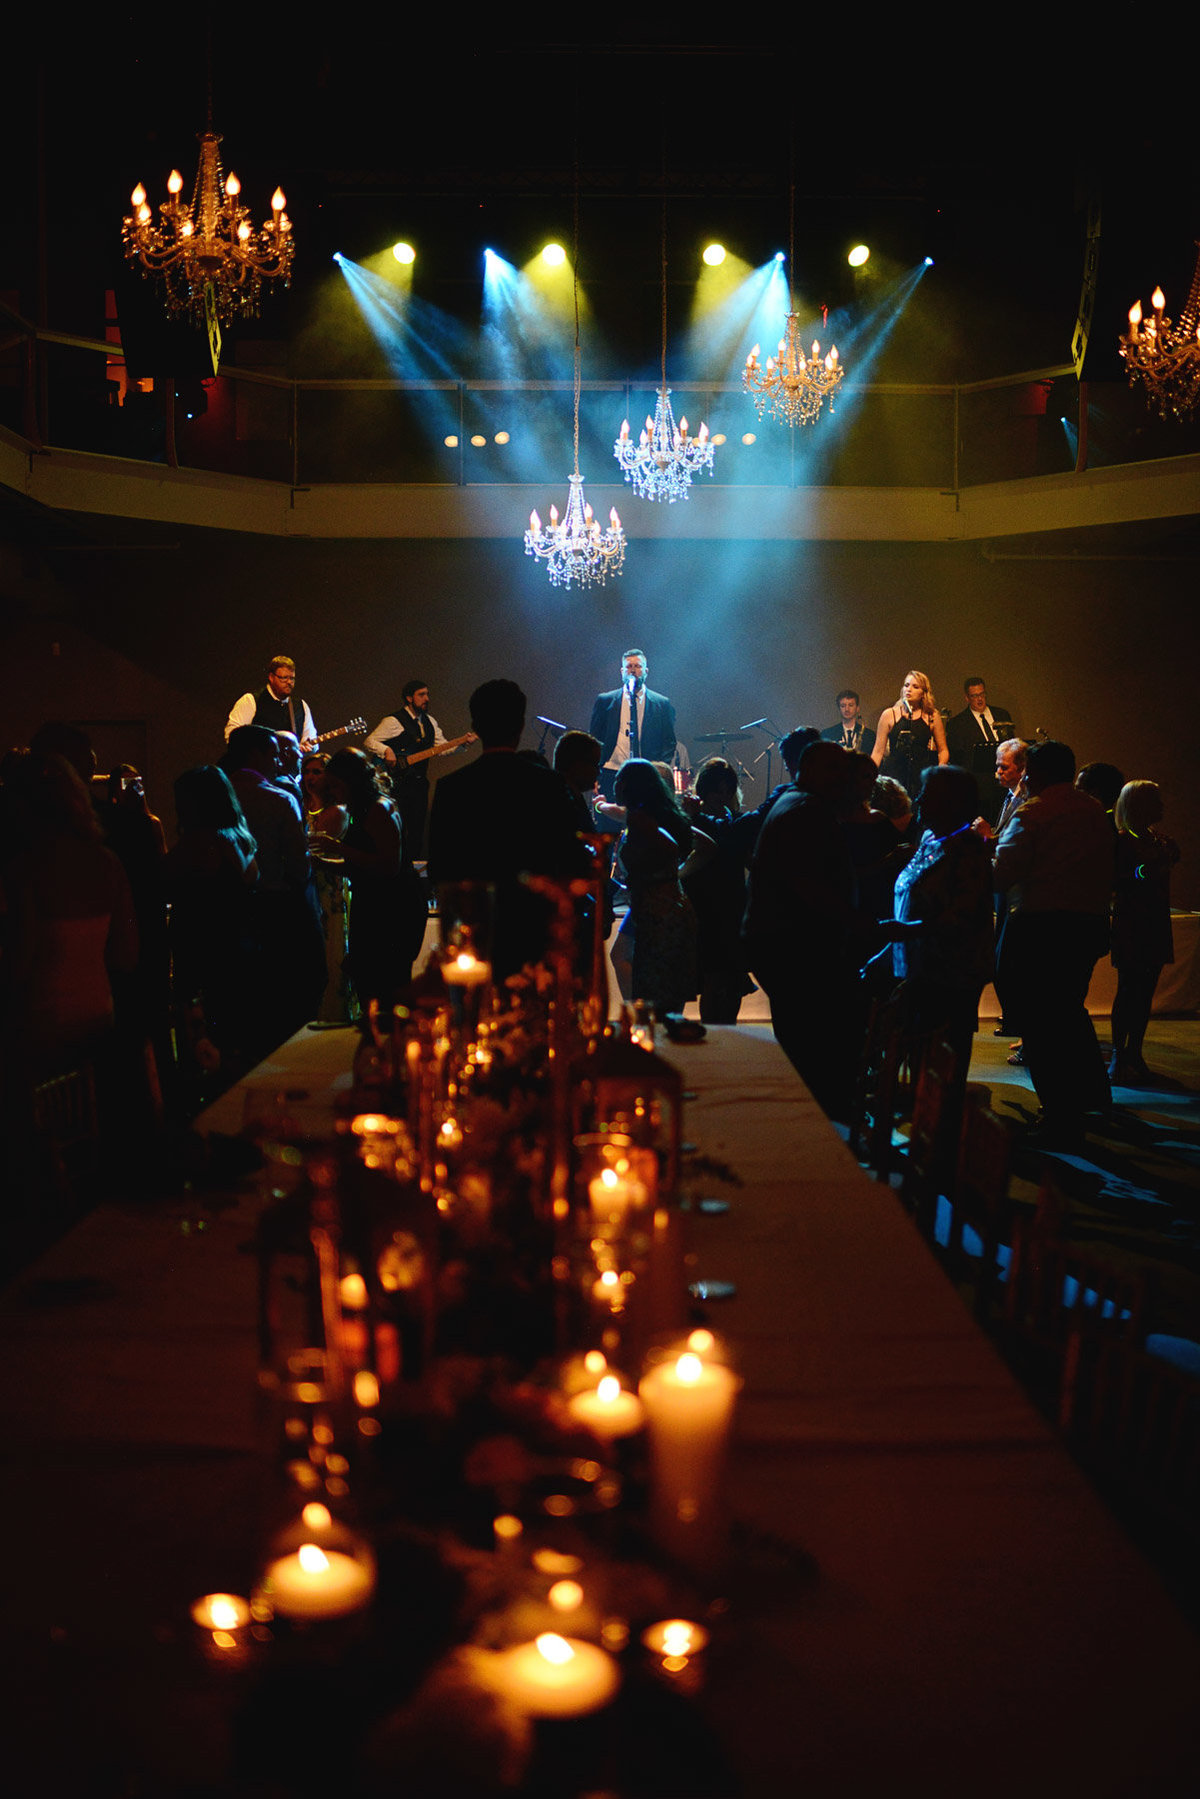 muse event center wedding photos minneapolis wedding photographer bryan newfield photography 84